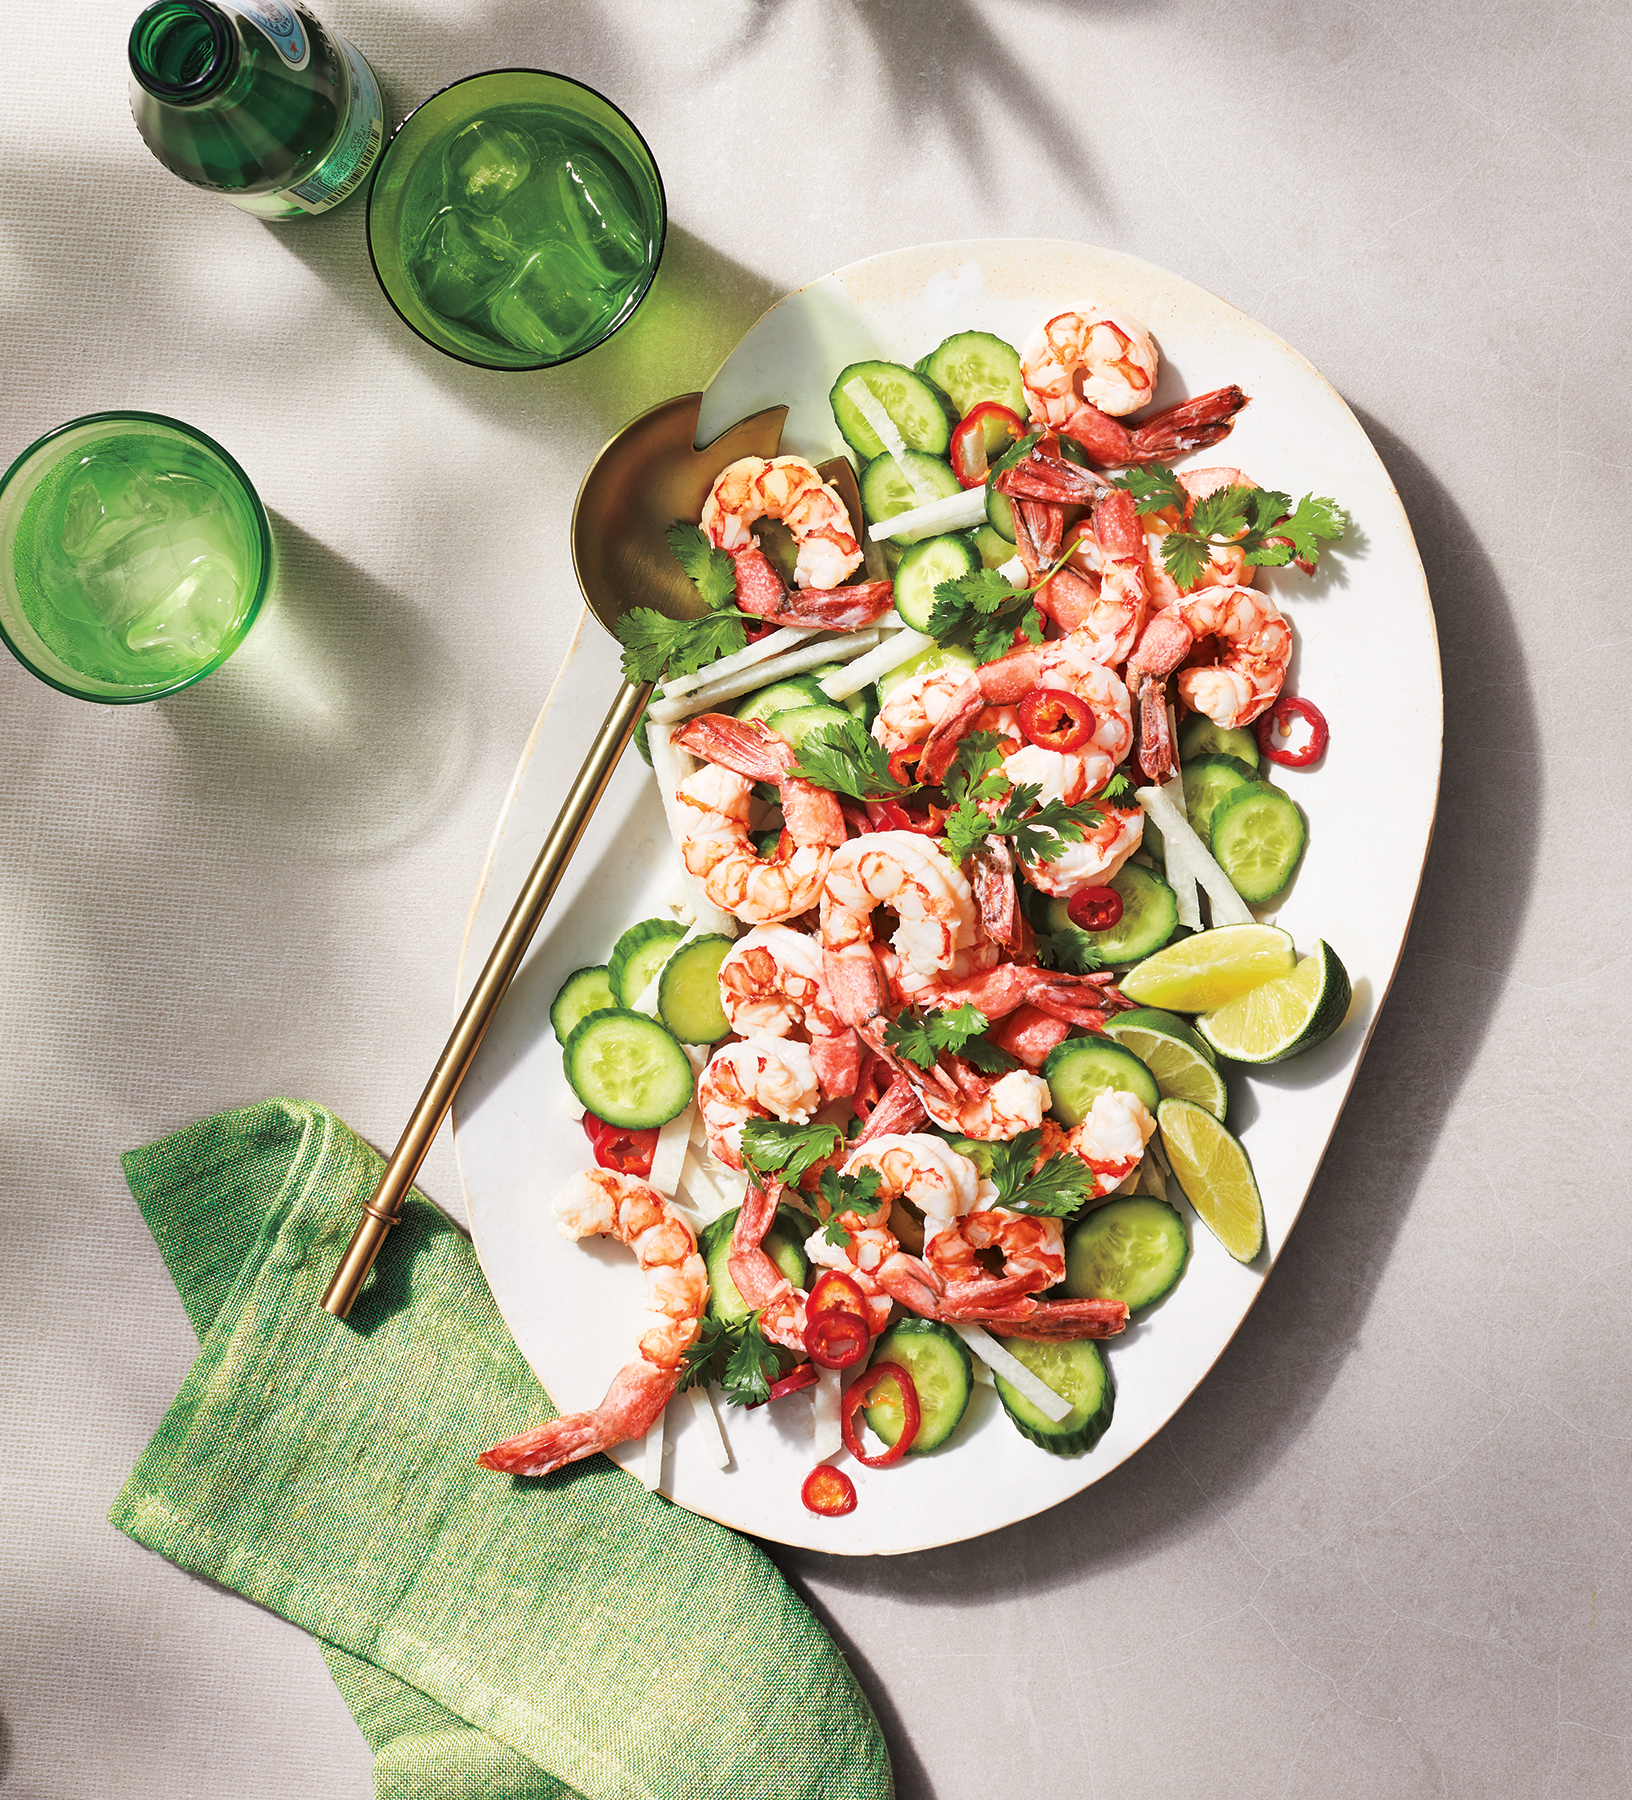 Coconut-Marinated Shrimp With Cucumber and Jicama